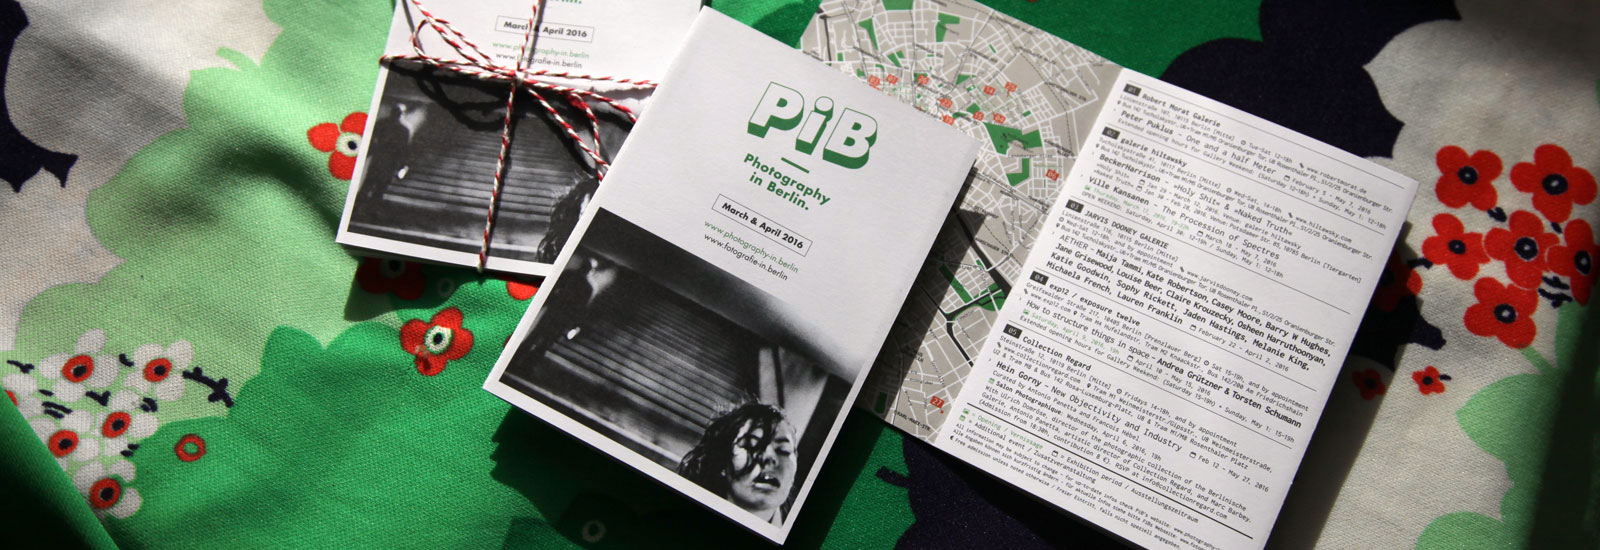 The PiB Guide #6 | March/April 2016 © PiB